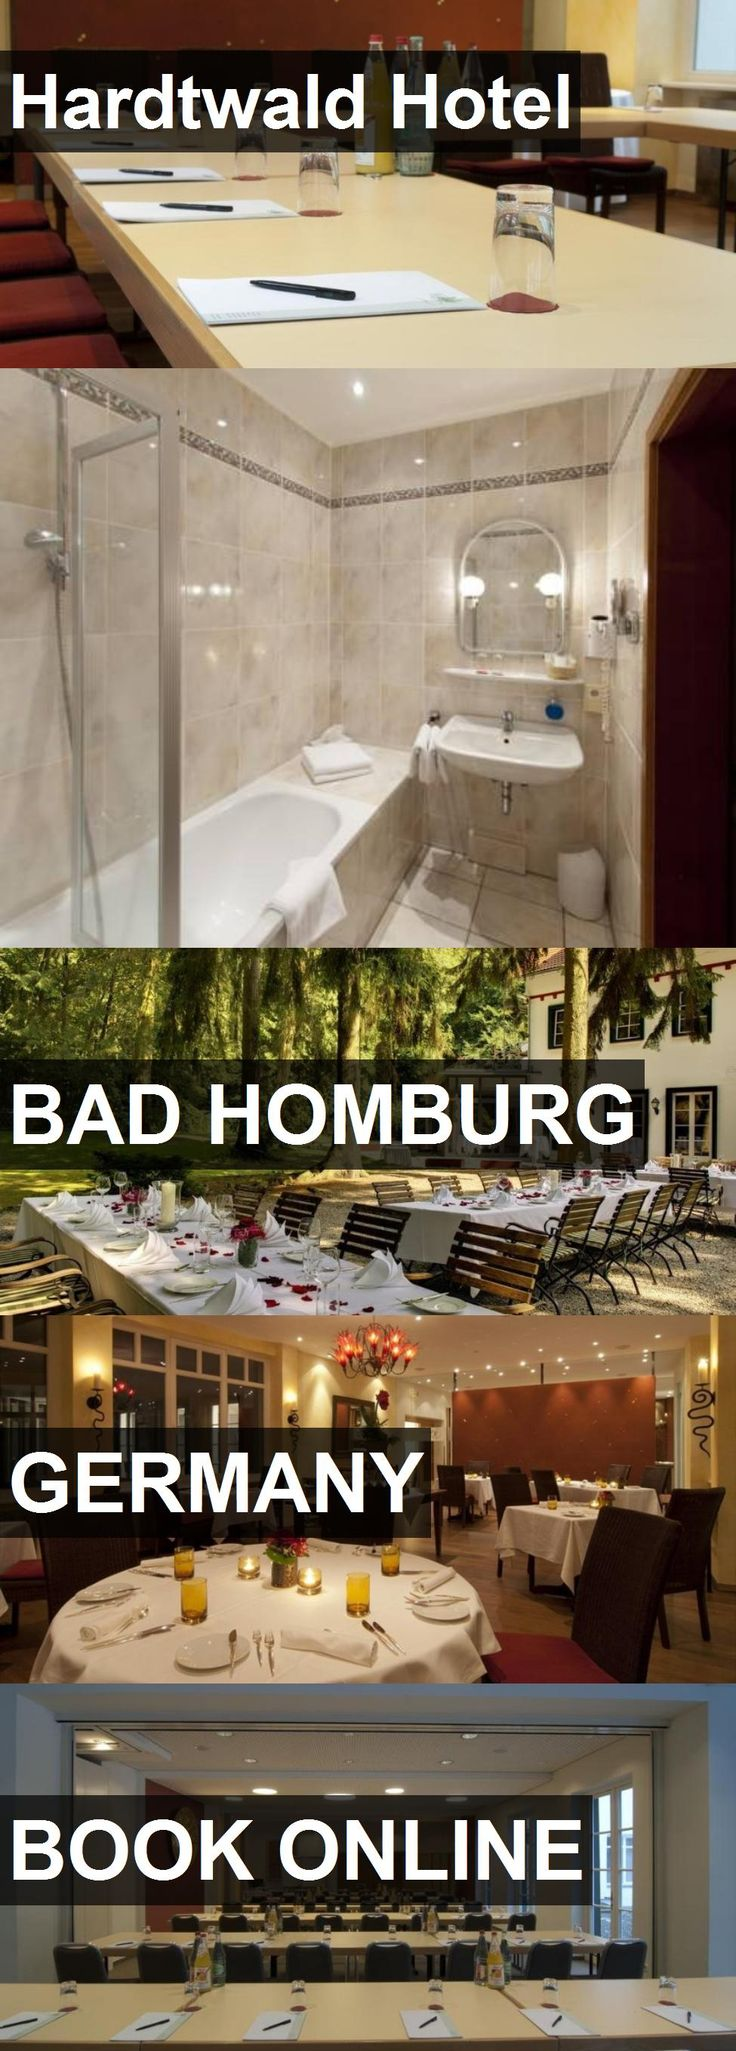 Hotel Hardtwald Hotel in Bad Homburg, Germany. For more information, photos, reviews and best prices please follow the link. #Germany #BadHomburg #HardtwaldHotel #hotel #travel #vacation